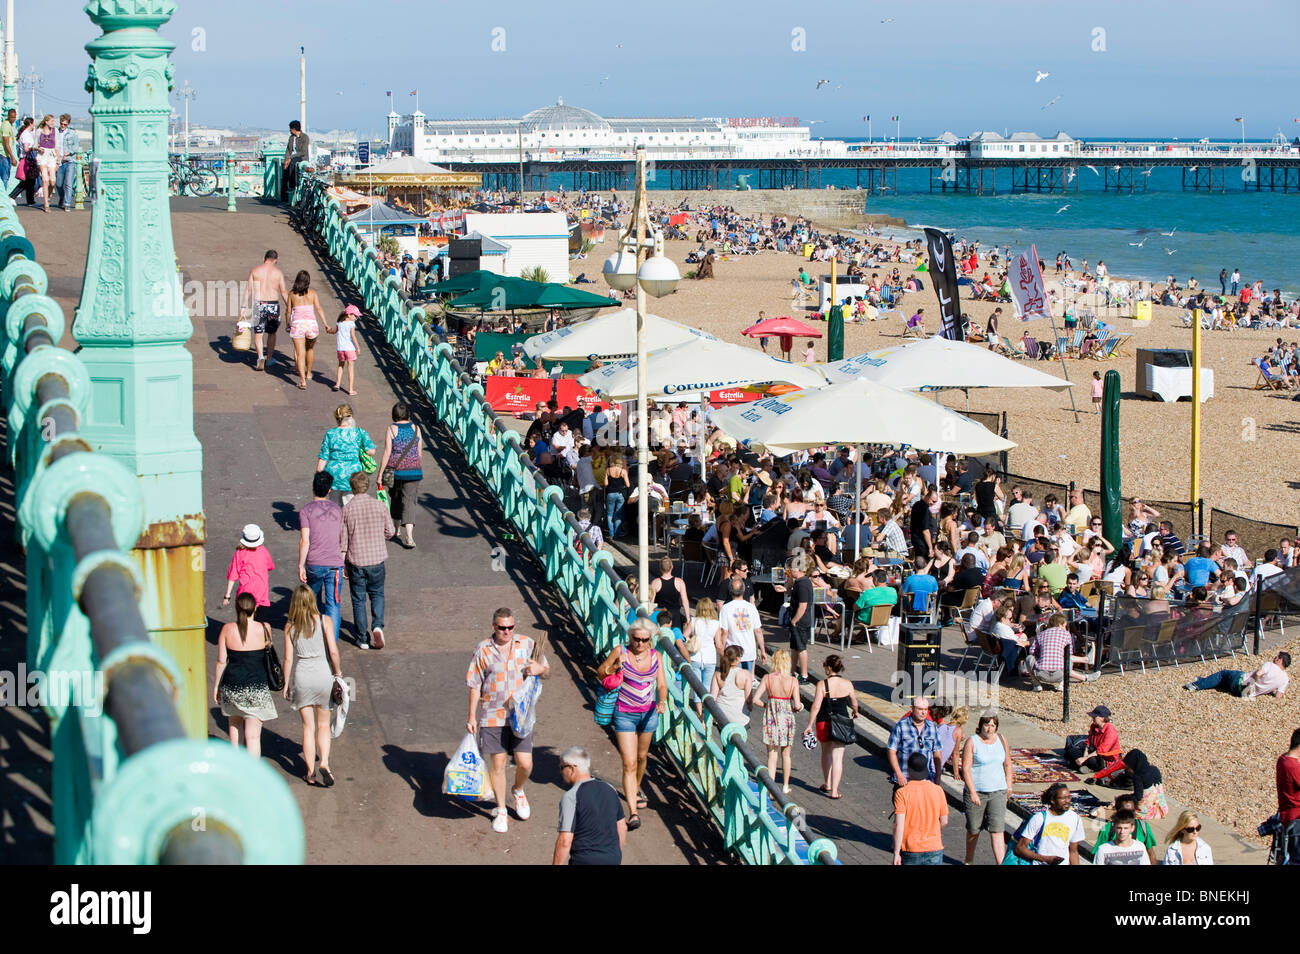 Crowded seafront and pebble beach, Brighton, East Sussex, United Kingdom - Stock Image